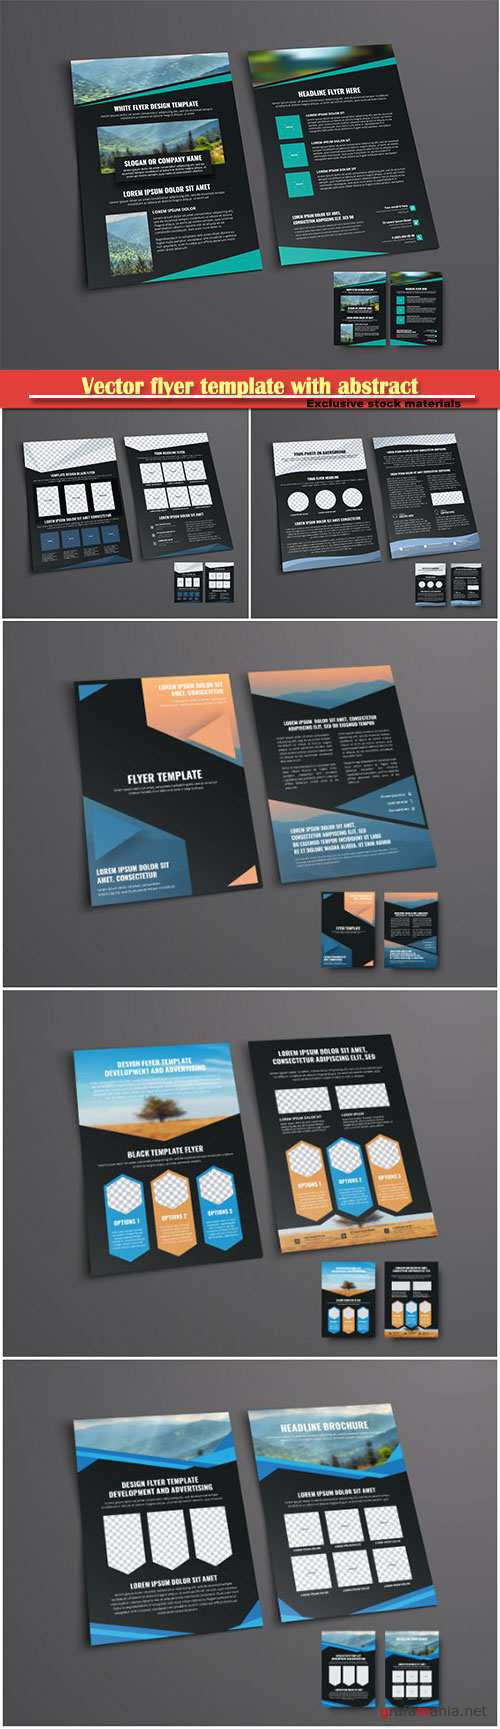 Vector flyer template with abstract geometric shapes for a photo